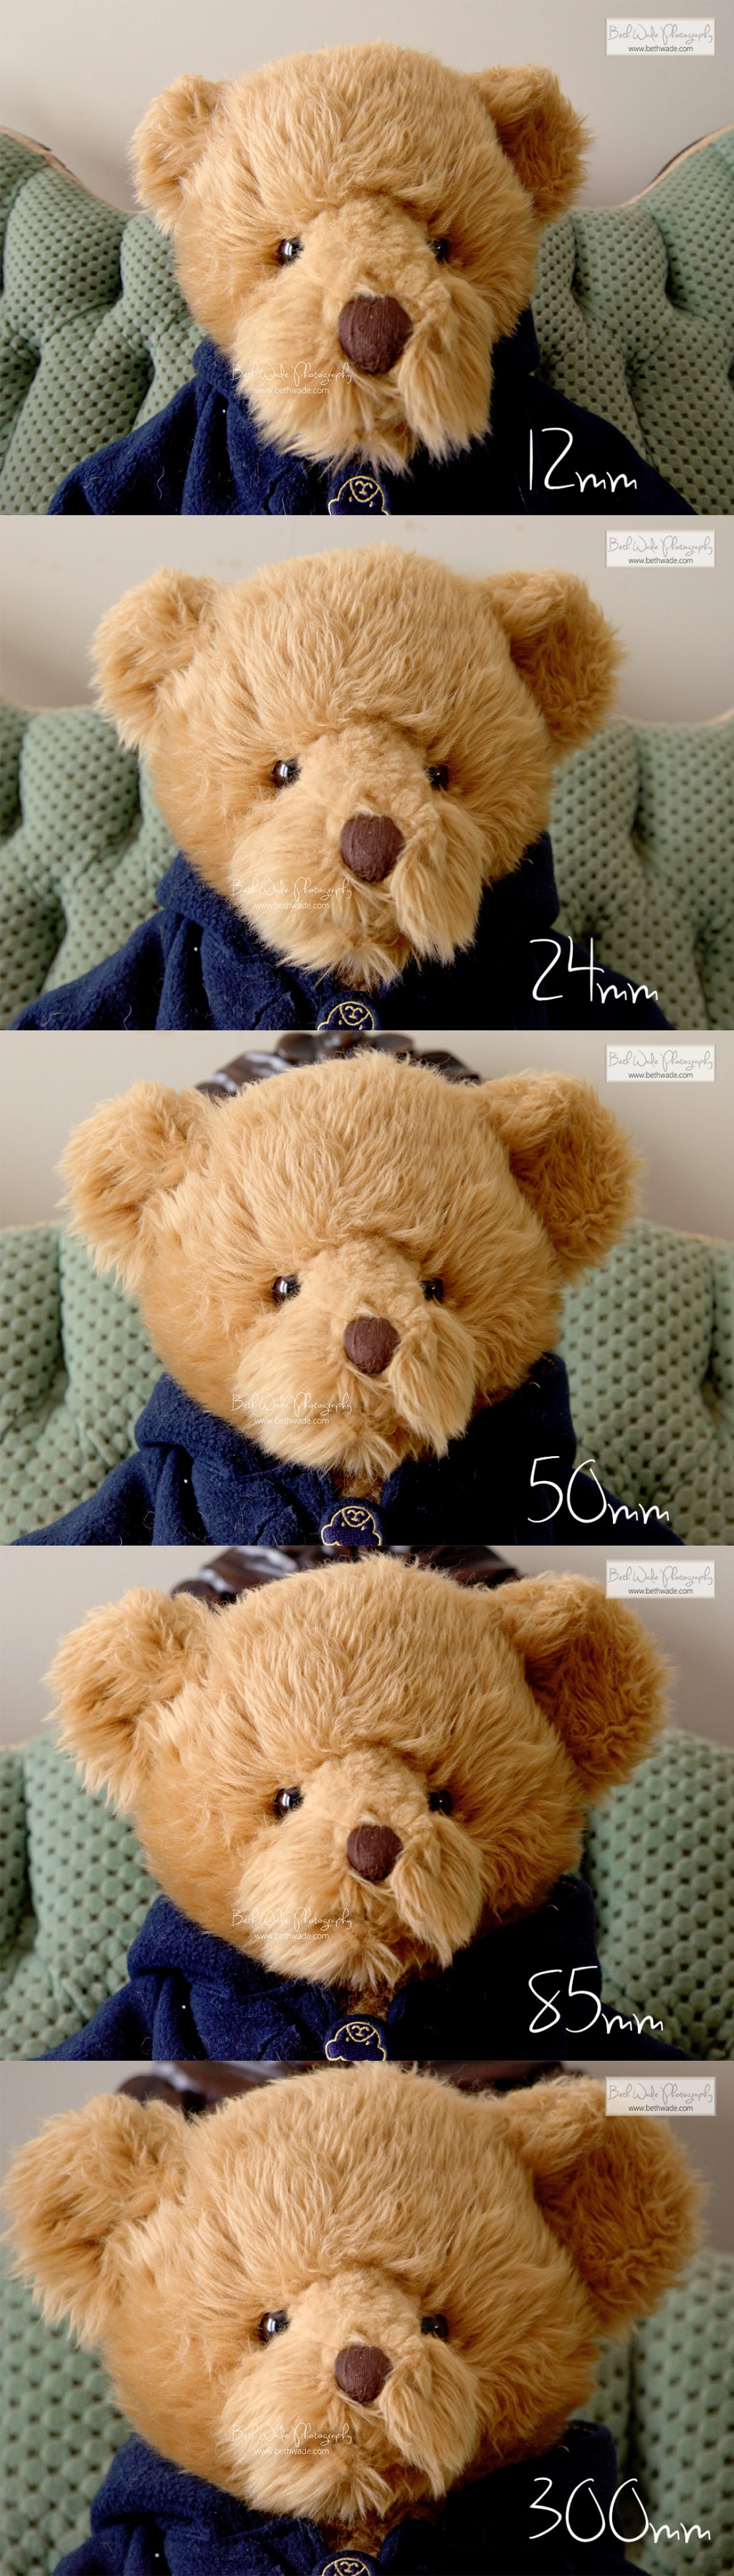 understanding focal length - photography tutorial